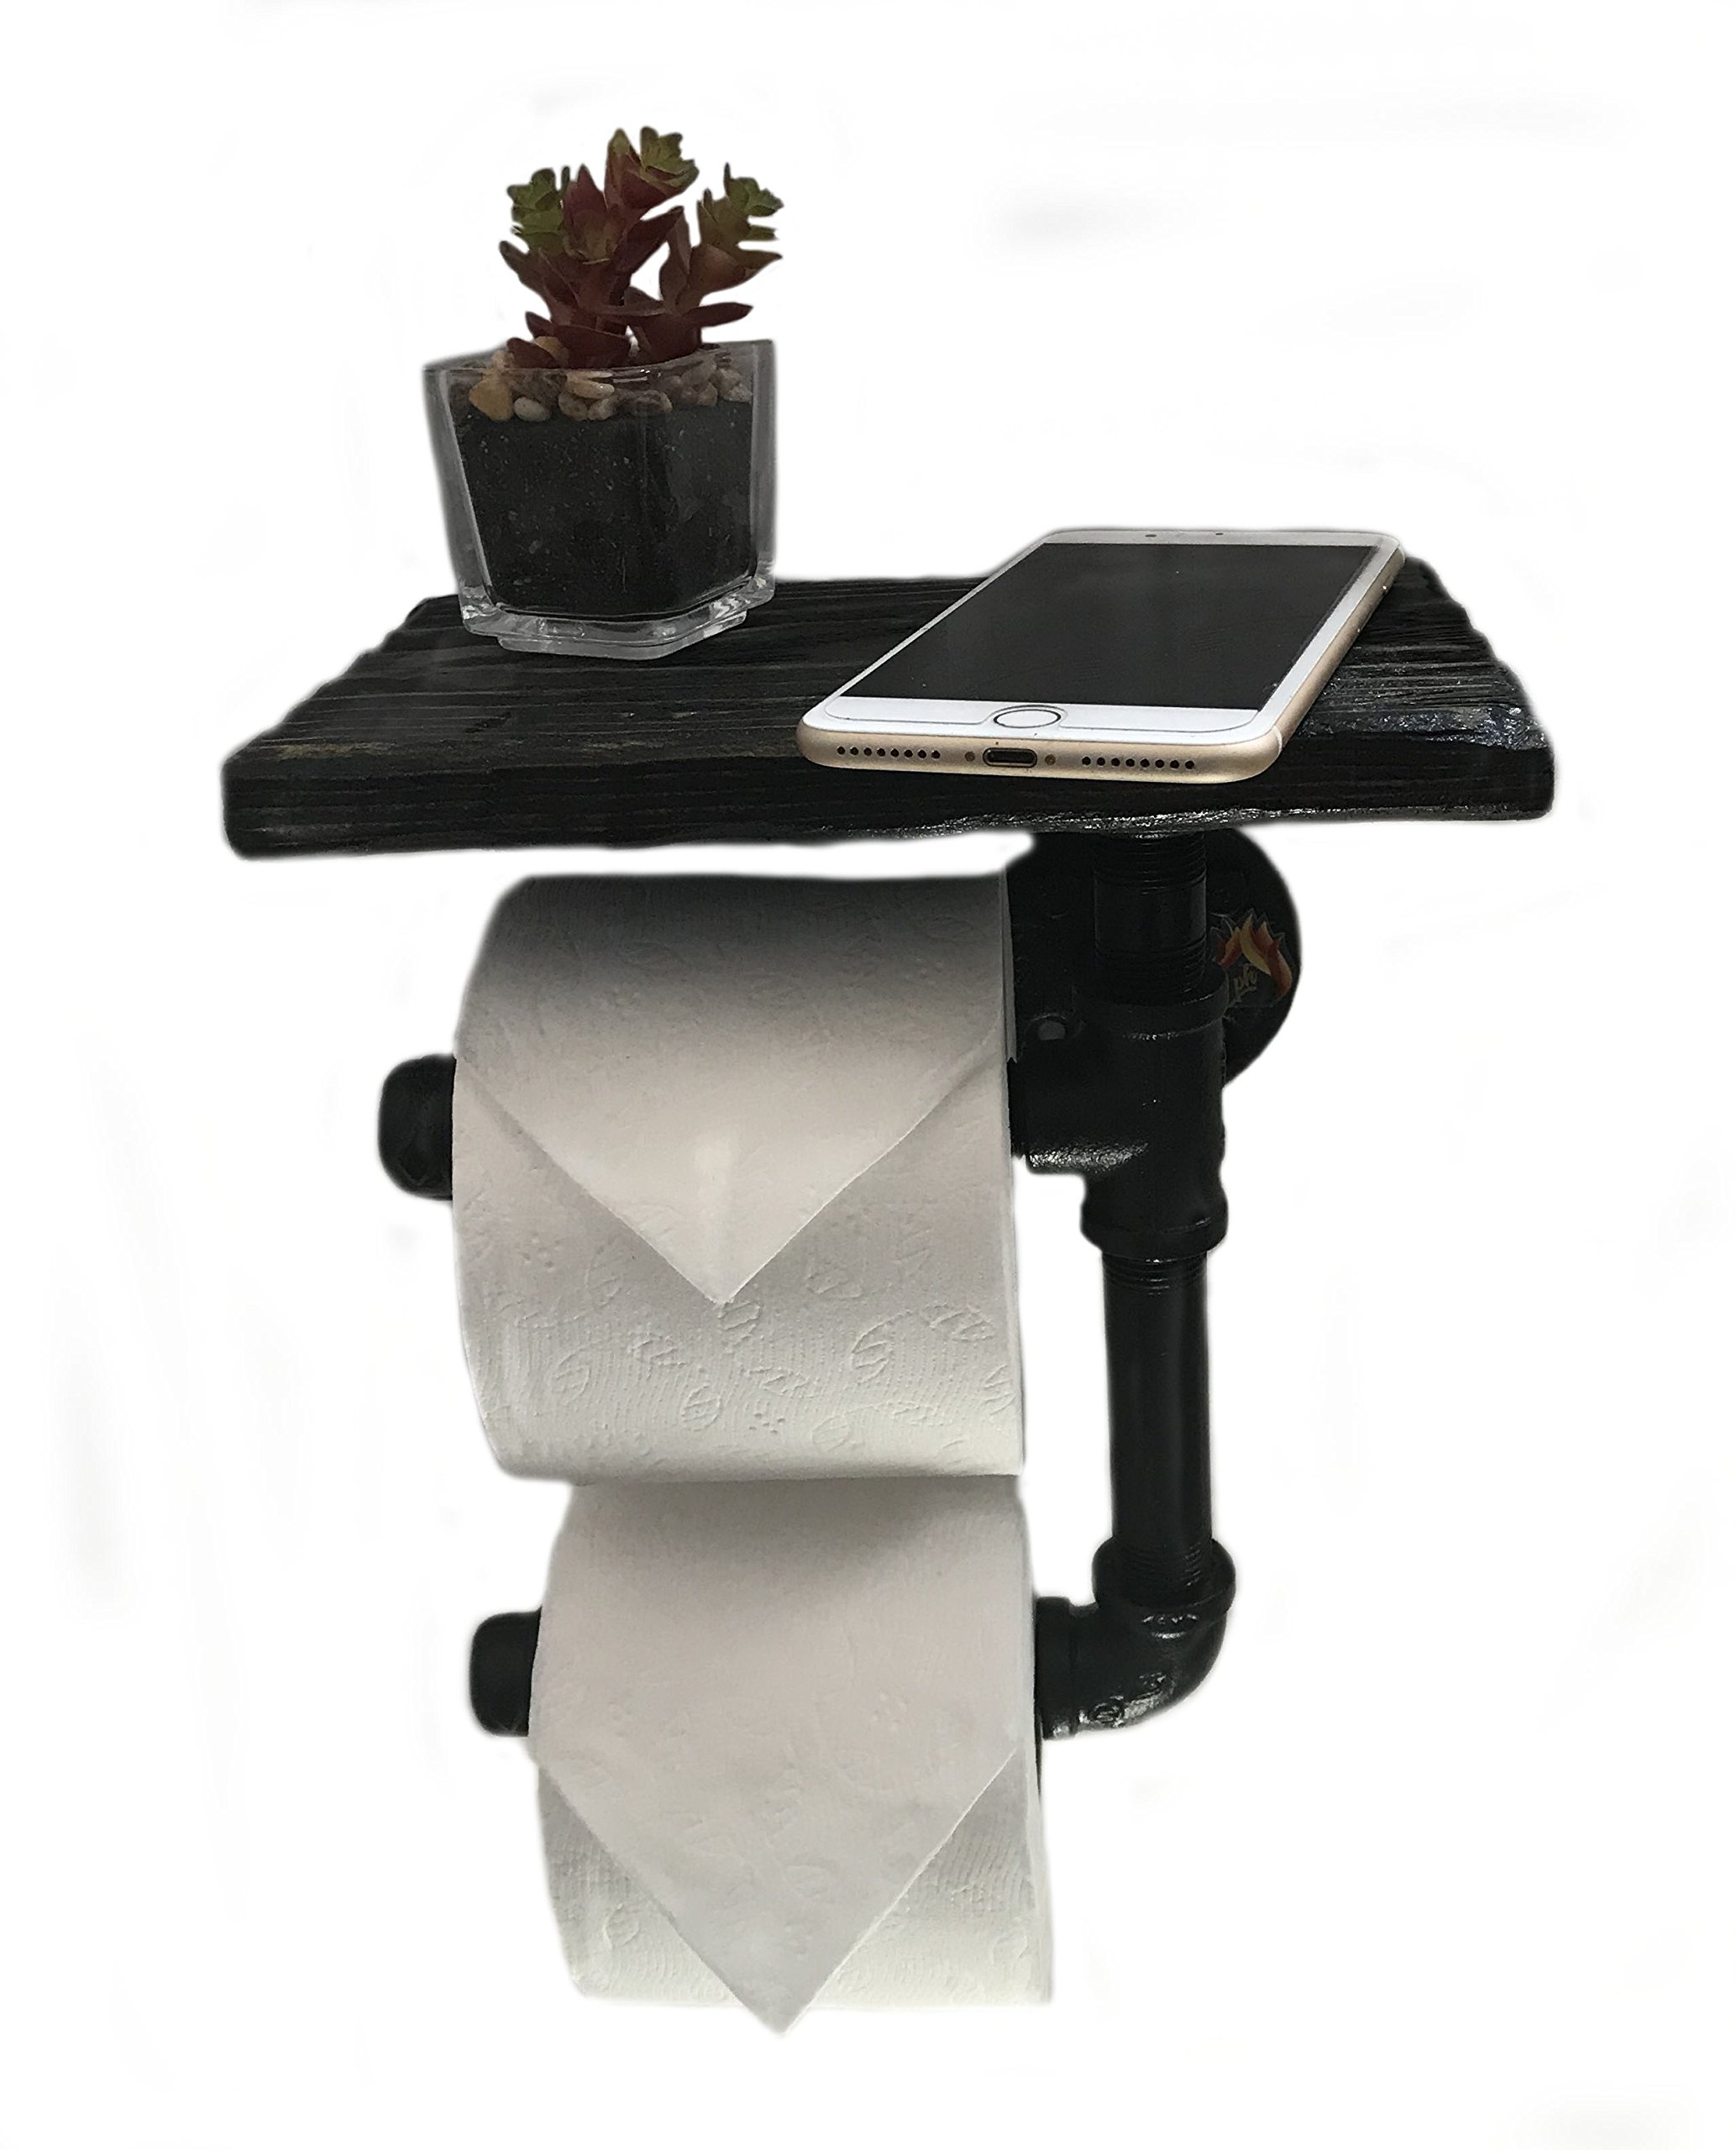 Toilet Paper Holder Shelf for Mobile Phone Storage in Bathroom with 5 Color Options (Dark Walnut) by Piping Hot Art Works (Image #1)